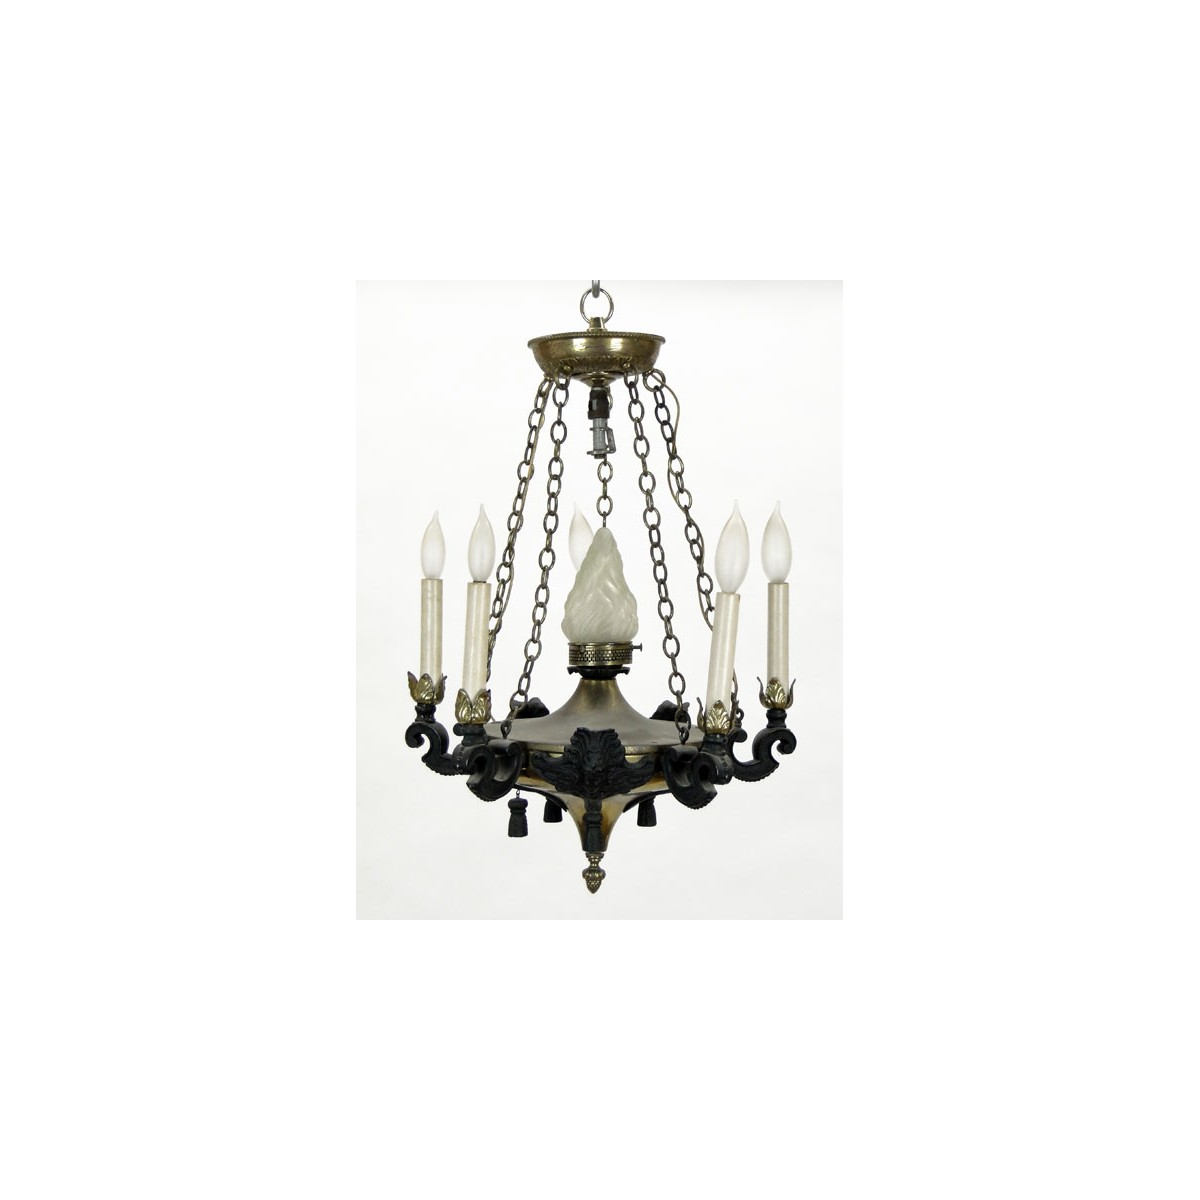 Early 20th Century Neo-Classical Style Six (6) Light Gilt Metal and Patinated Metal Chandelier. Uns